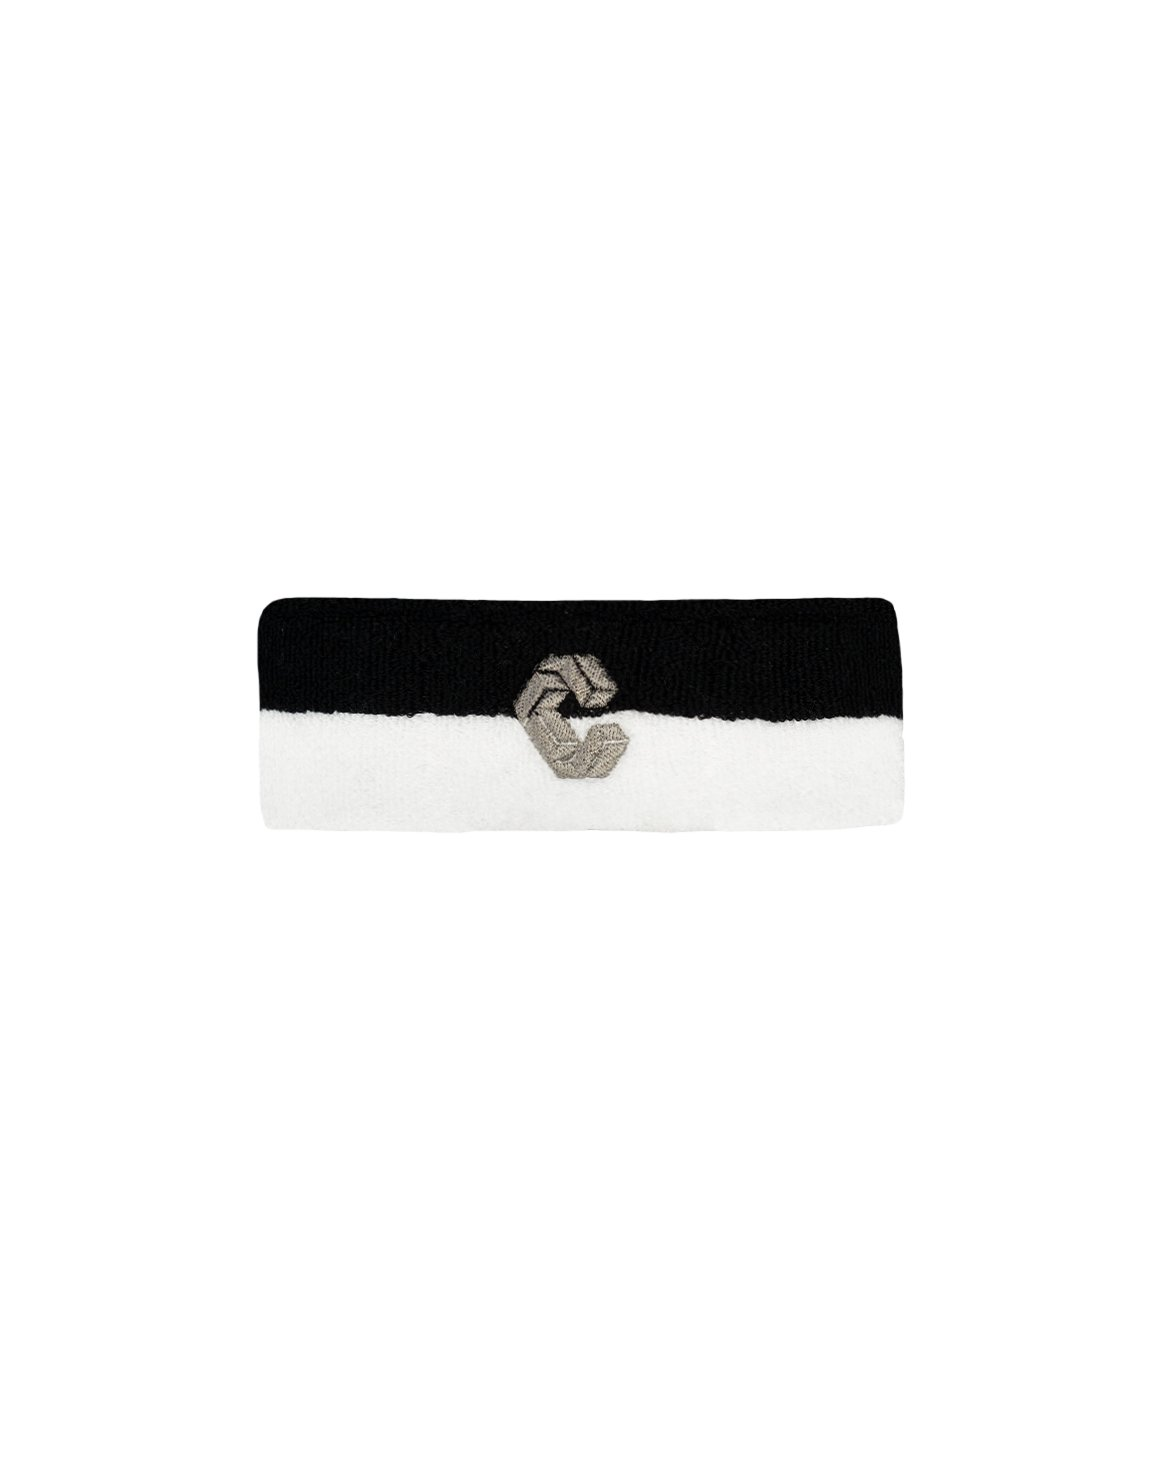 <img class='new_mark_img1' src='https://img.shop-pro.jp/img/new/icons1.gif' style='border:none;display:inline;margin:0px;padding:0px;width:auto;' />CRONOS BI-COLOR HEAD BAND【BLACK×WHITE】